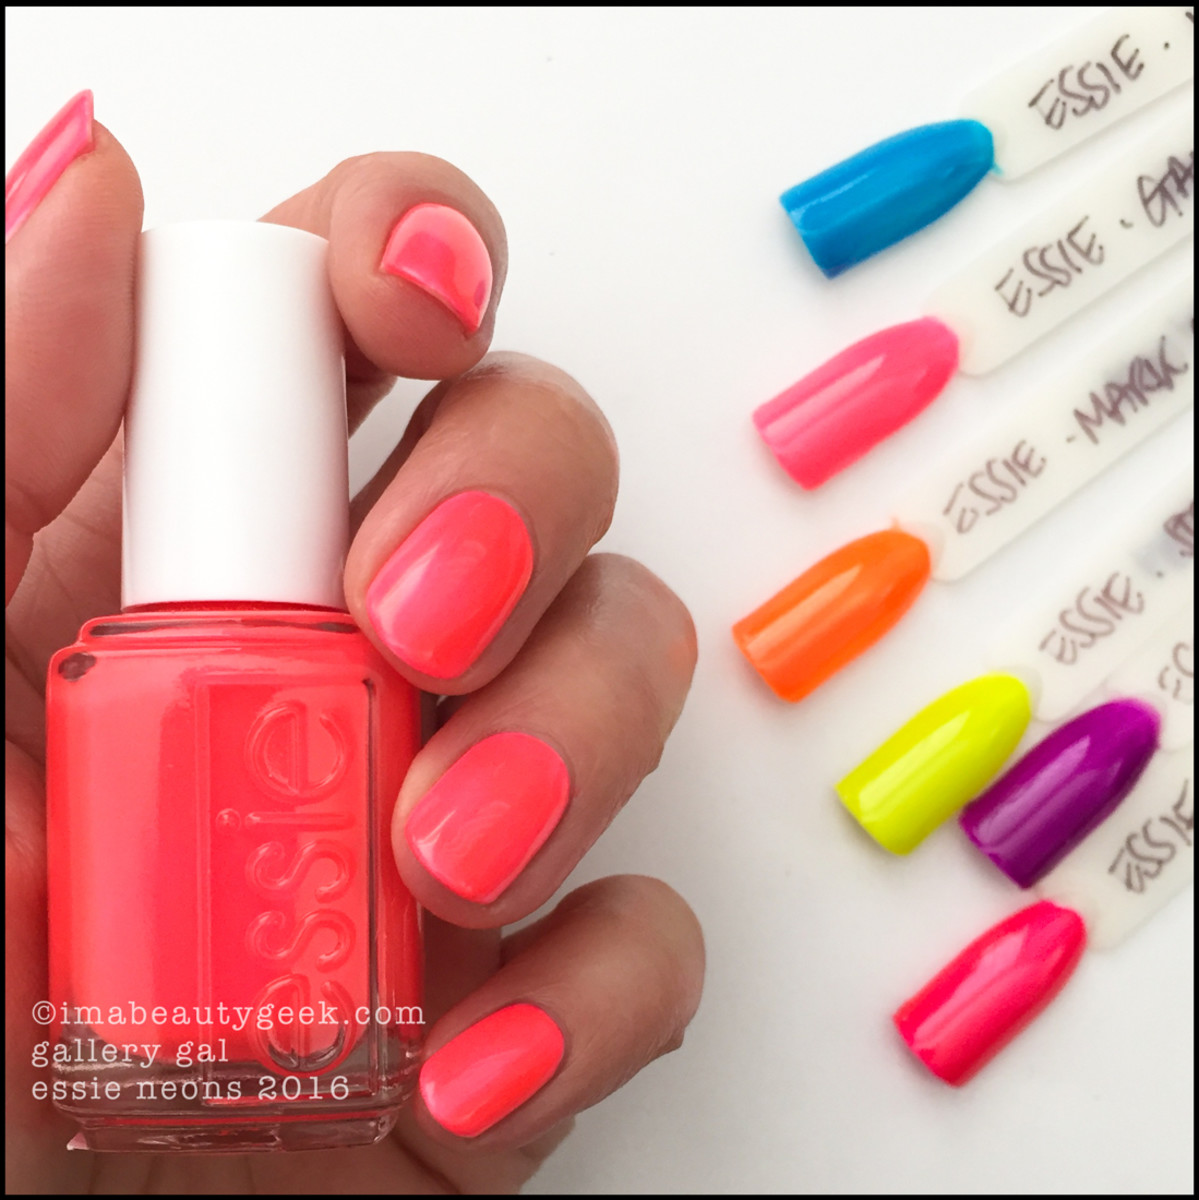 Essie Gallery Gal_Essie Neons 2016 Collection Swatches Review